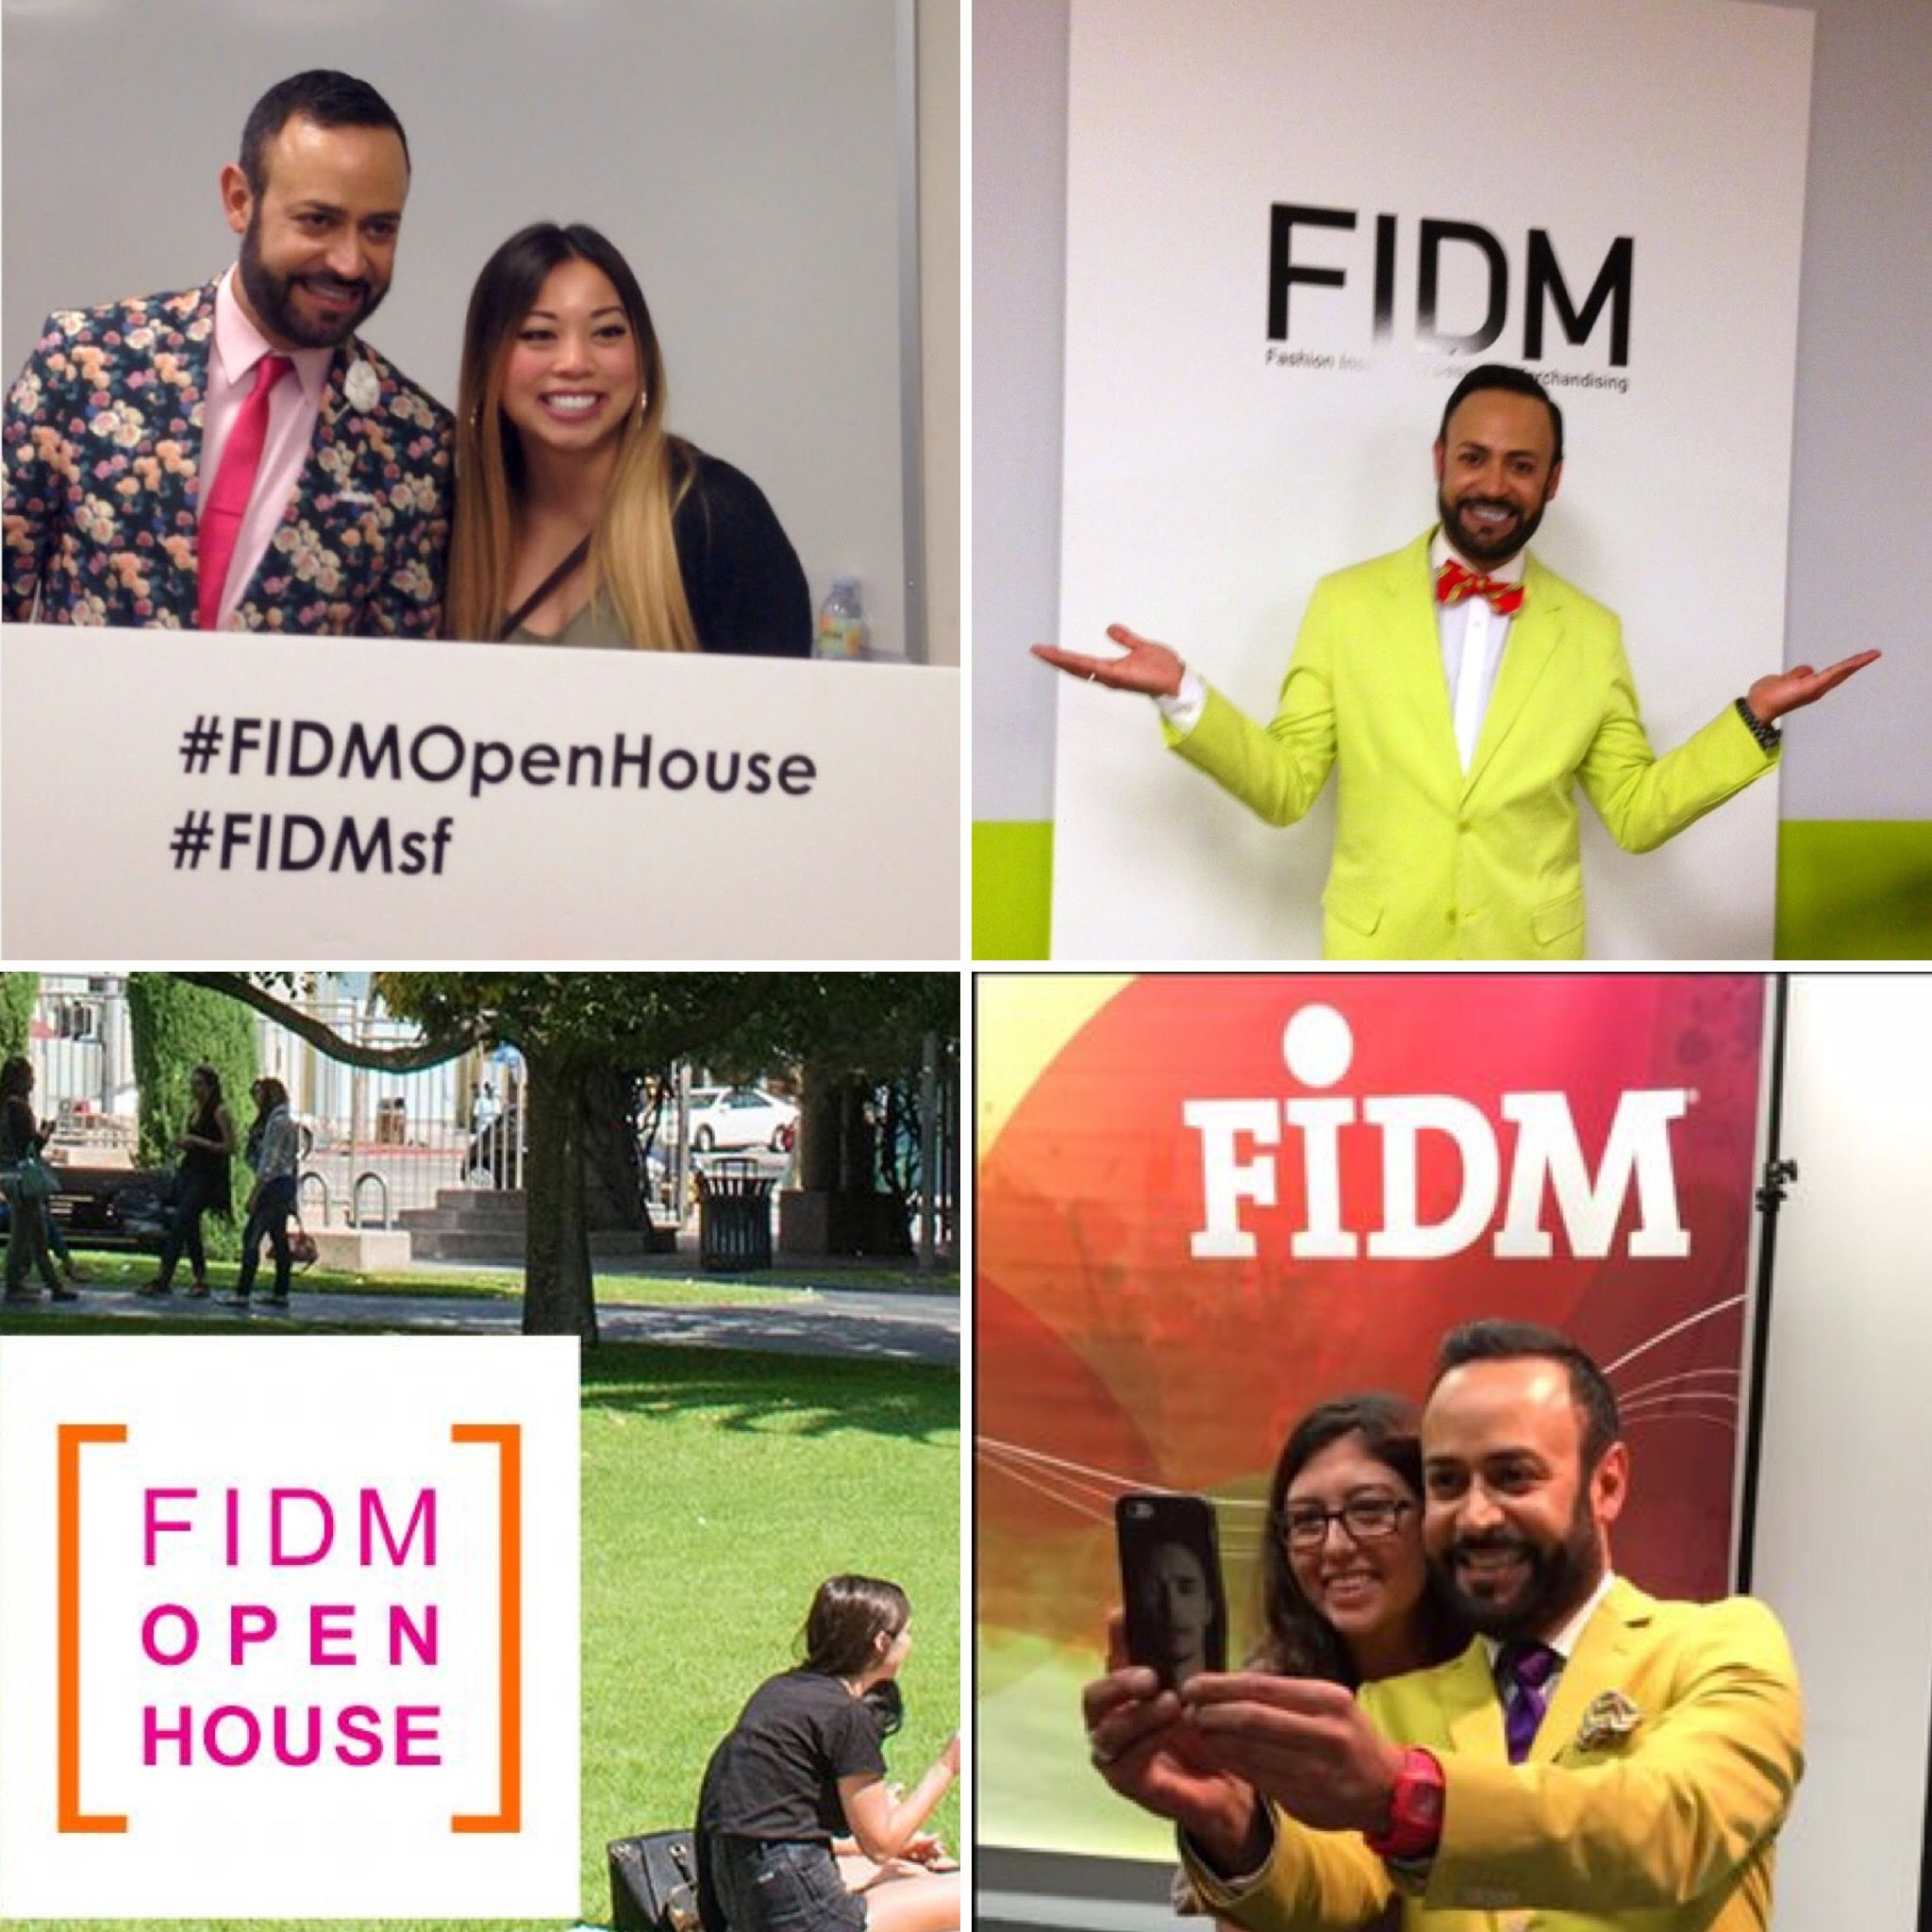 Nick Verreos--FIDM Open House